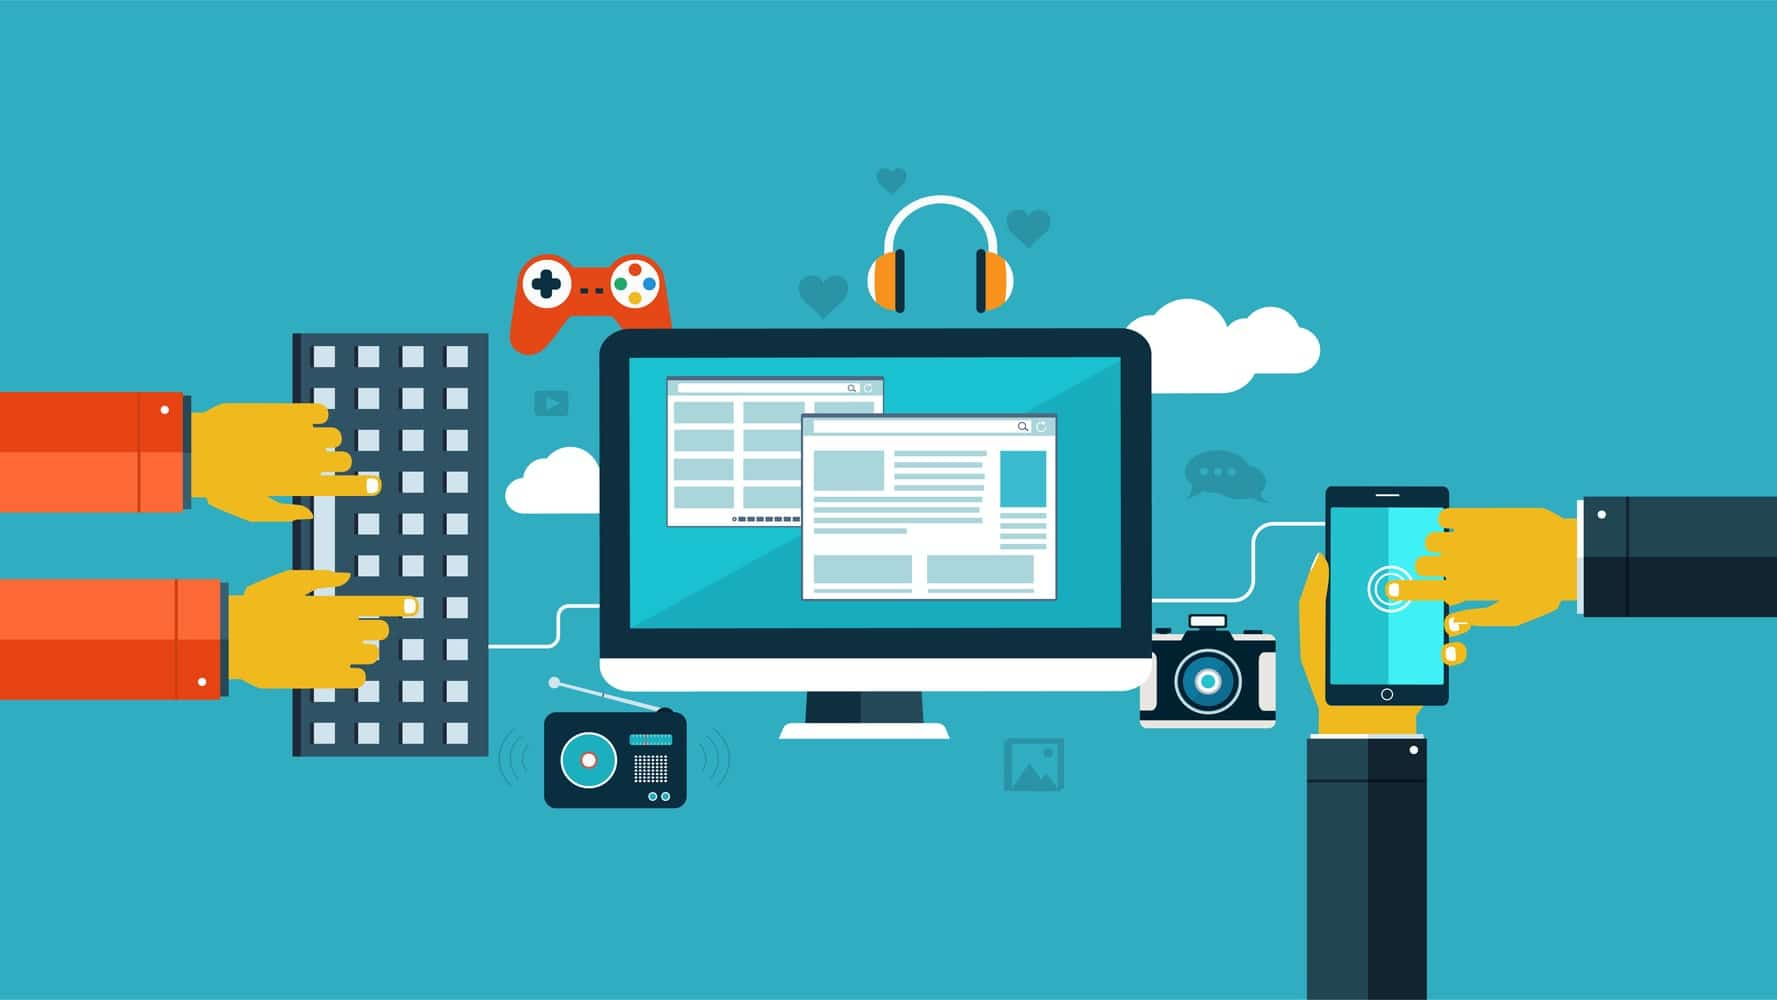 Gamification in web design